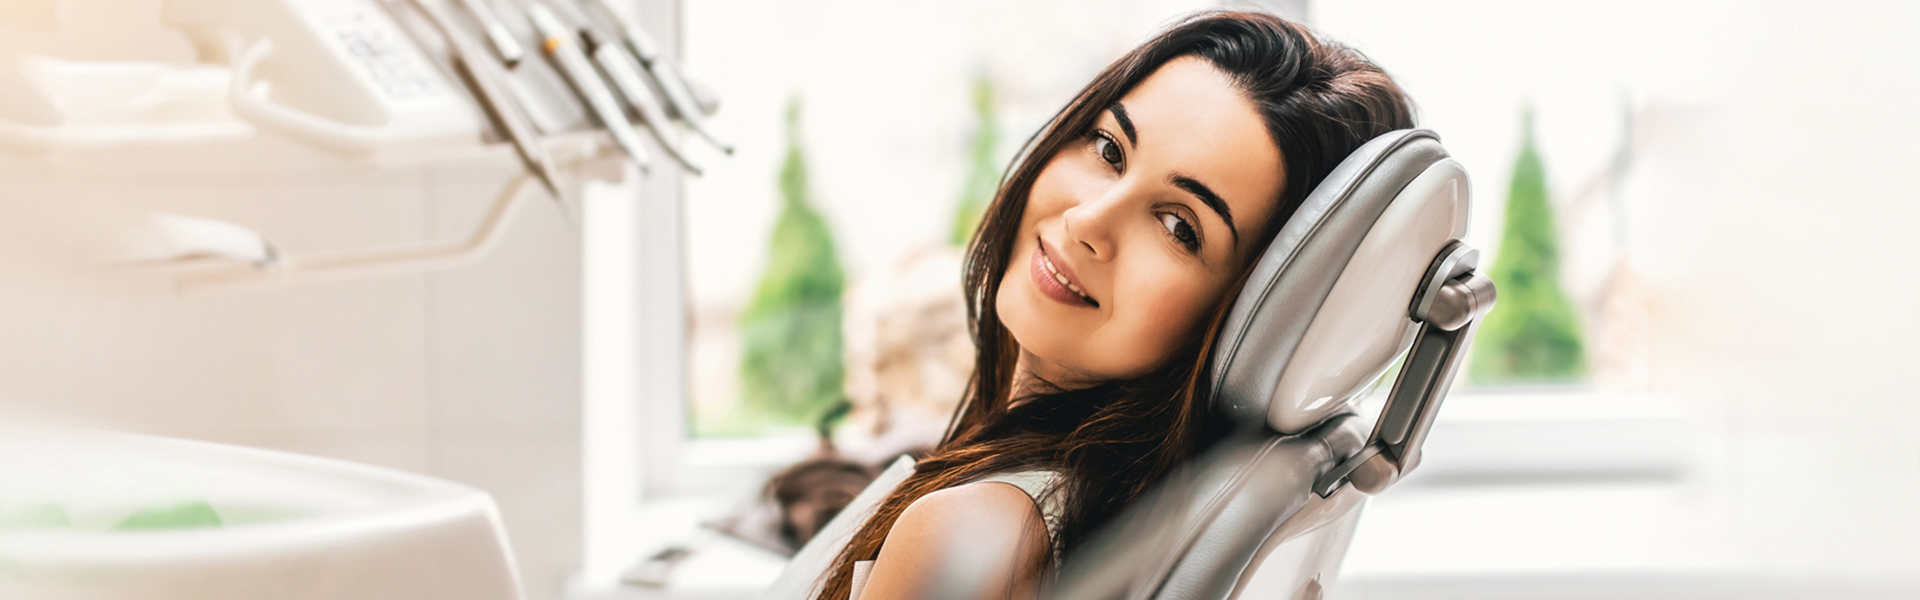 Root Canals Routine Procedures to Save Your Natural Tooth